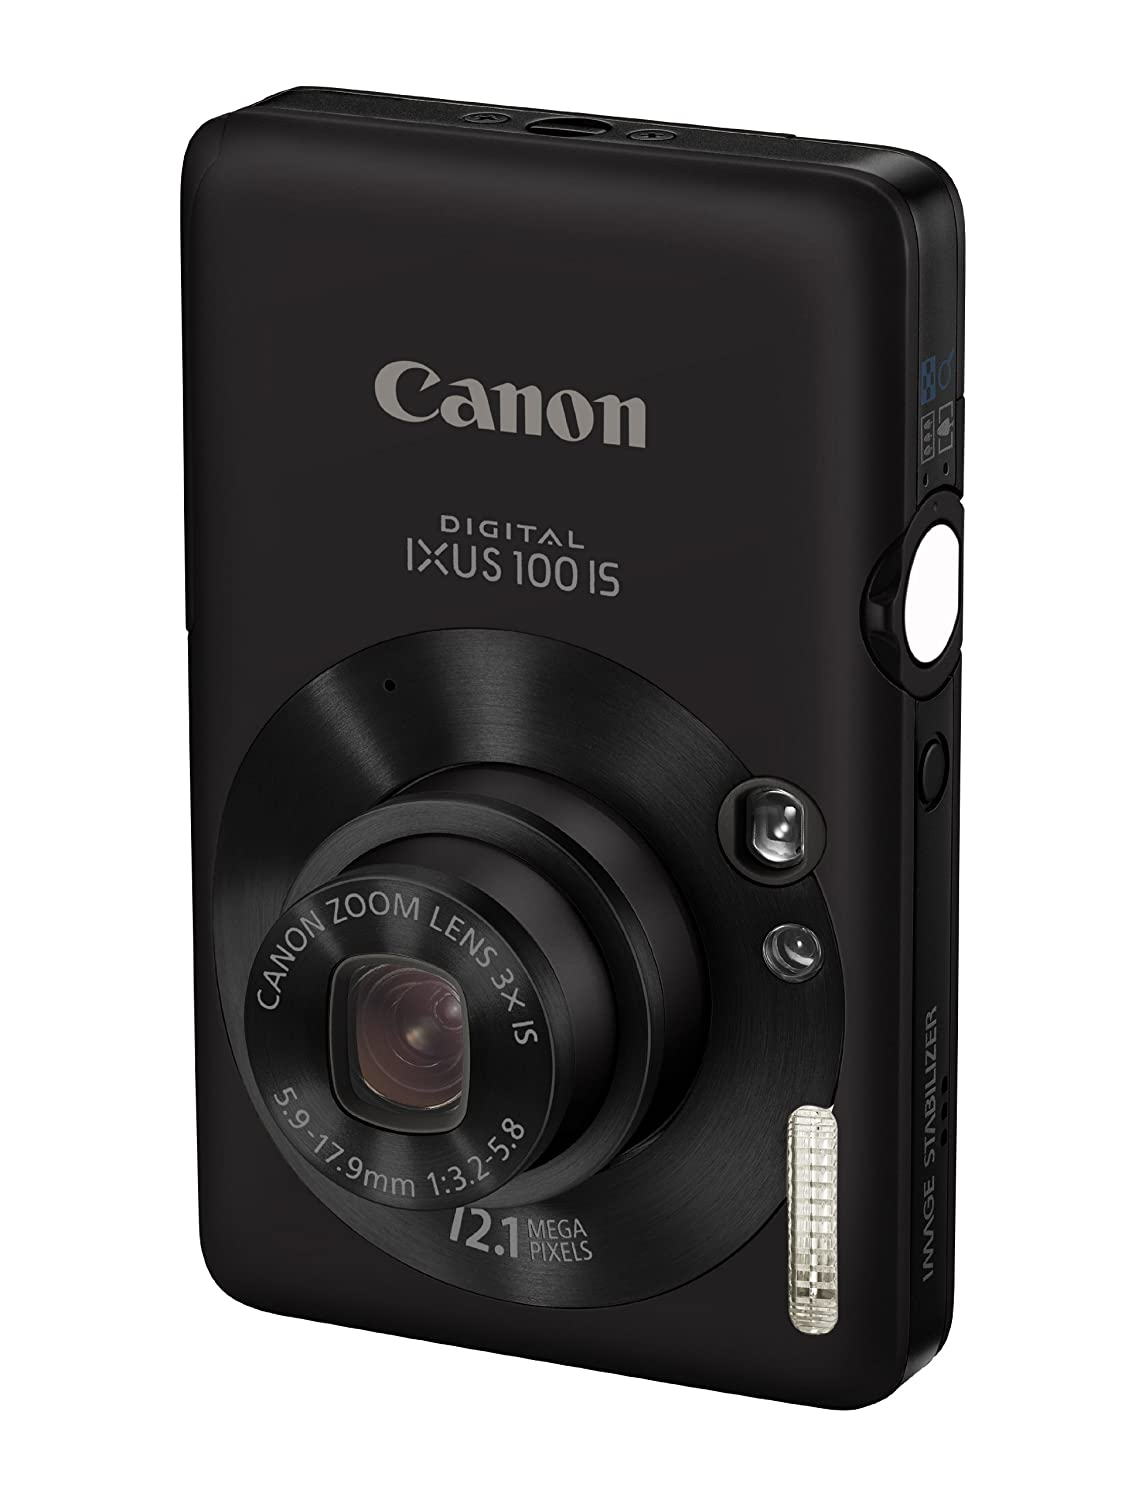 Canon Digital IXUS 100 IS Digital Camera - Black 2.5: Amazon.co.uk: Camera  & Photo